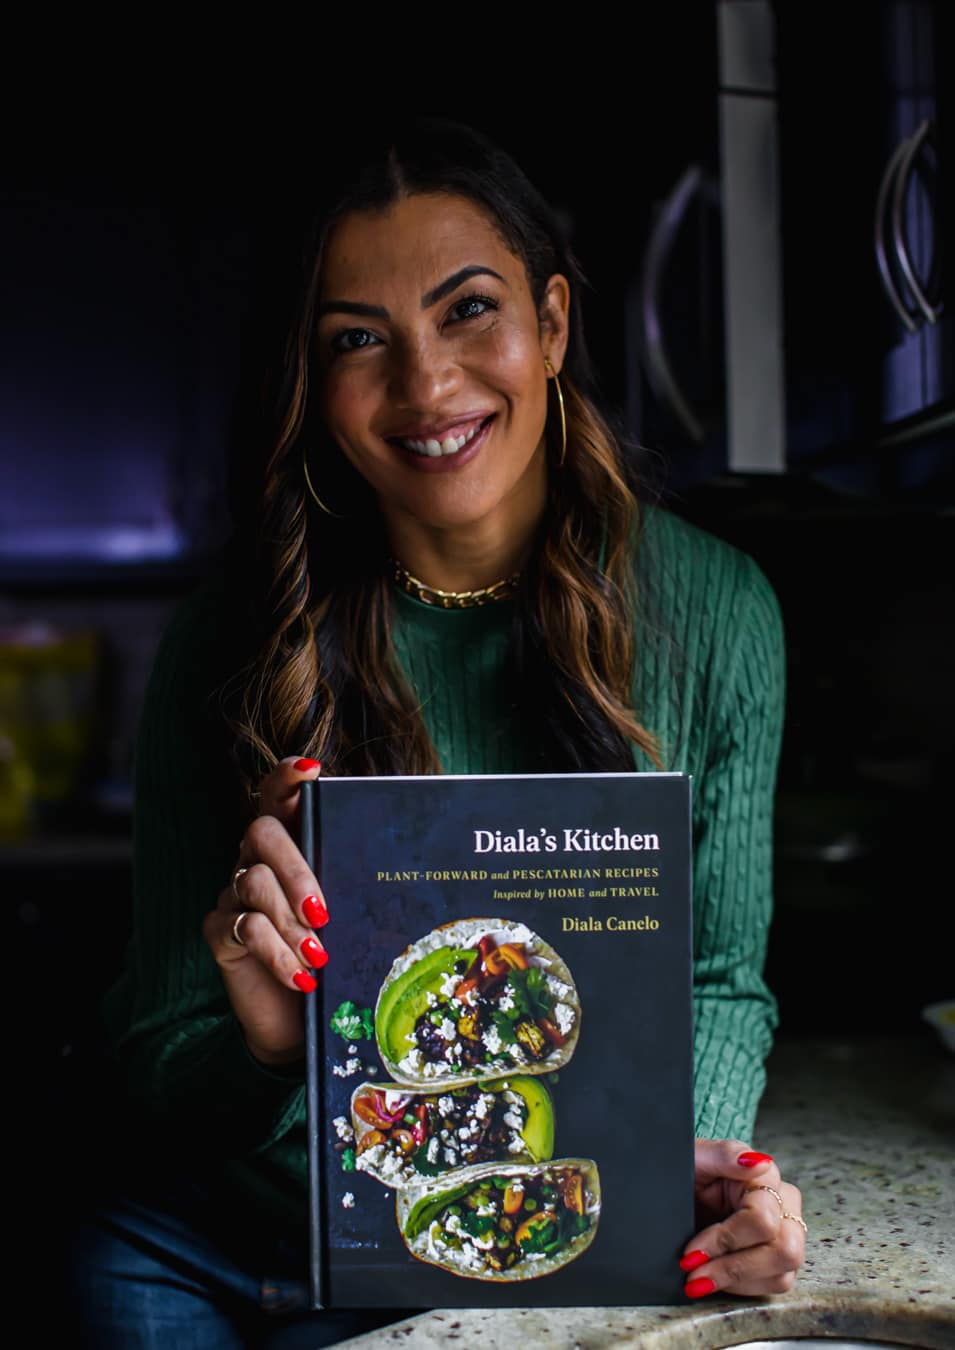 The Diala's Kitchen cookbook is out for pre-order!!